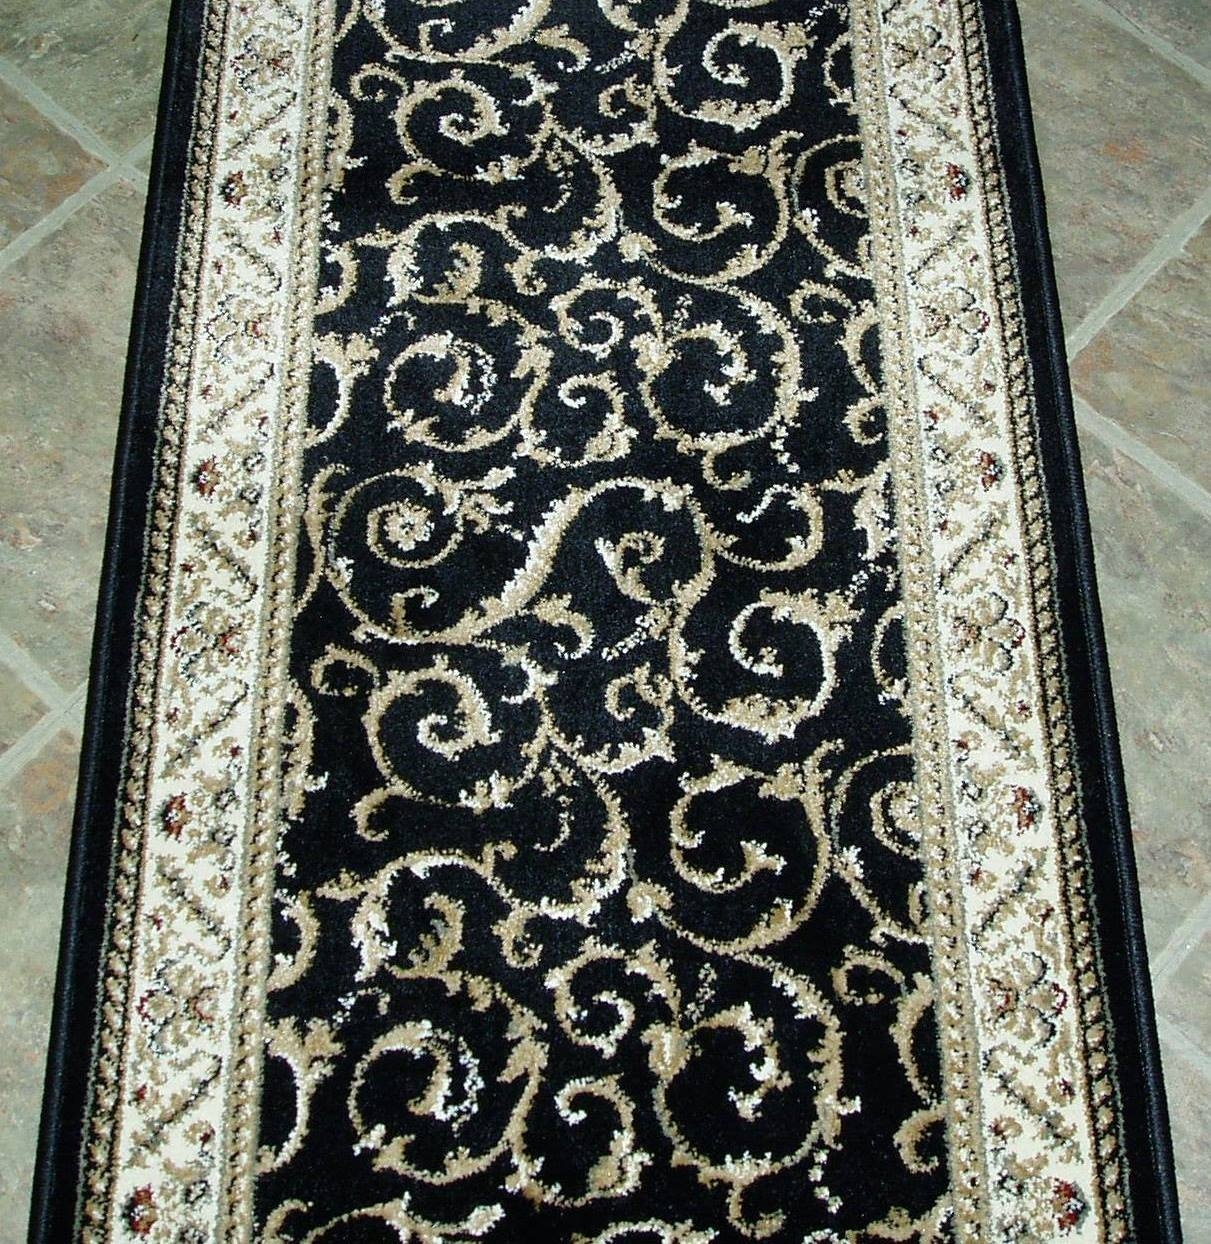 Rug Runners Hall Runner Rugs For Sale Rug Runners For Hallways Within Carpet Runners For Hallway (Image 13 of 15)